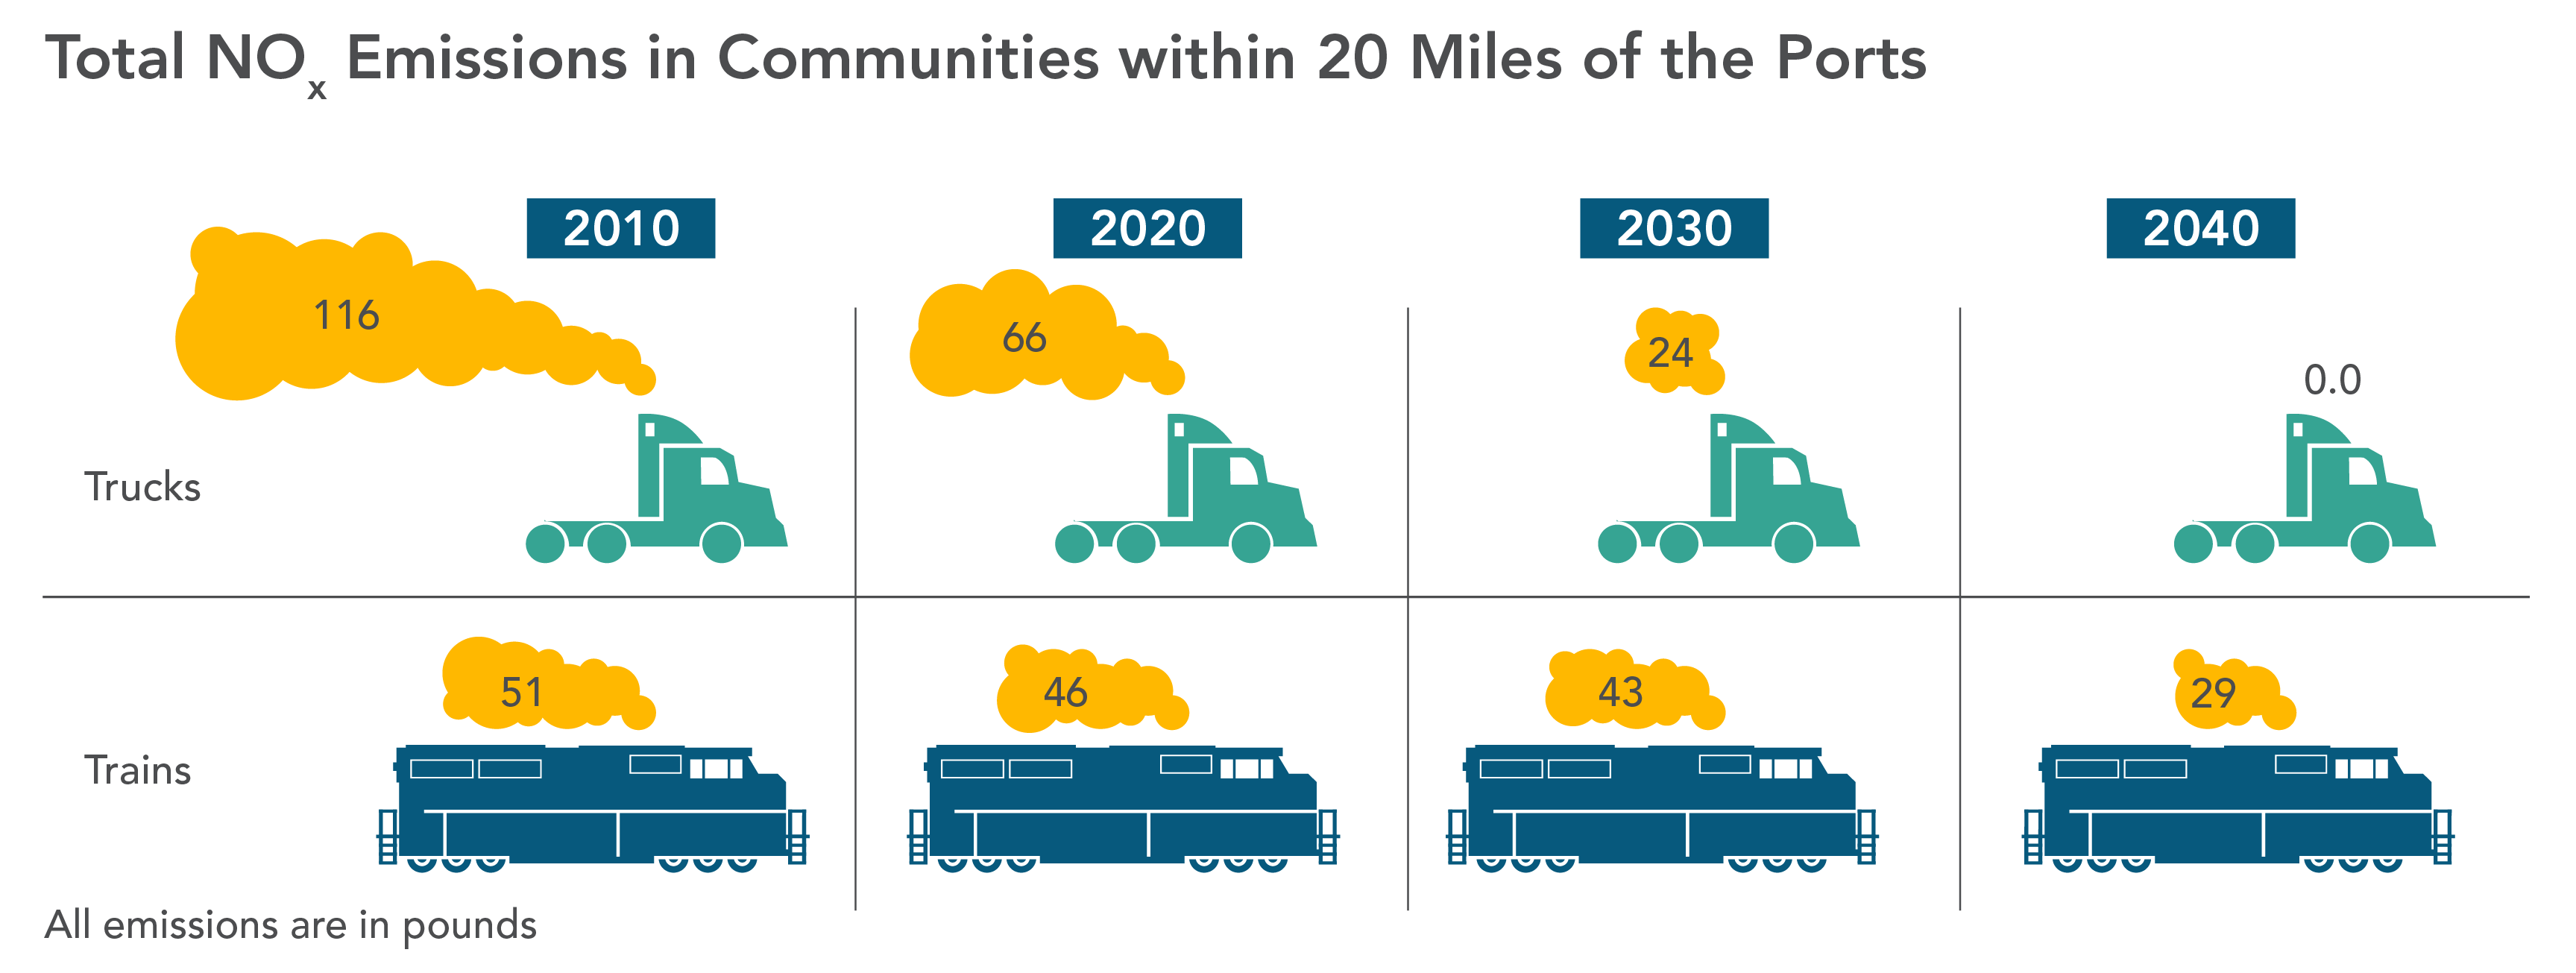 Comparison of truck and train Nox emissions in communities within 20 miles of the ports.  Trucks emit less Nox than trains by 2030.